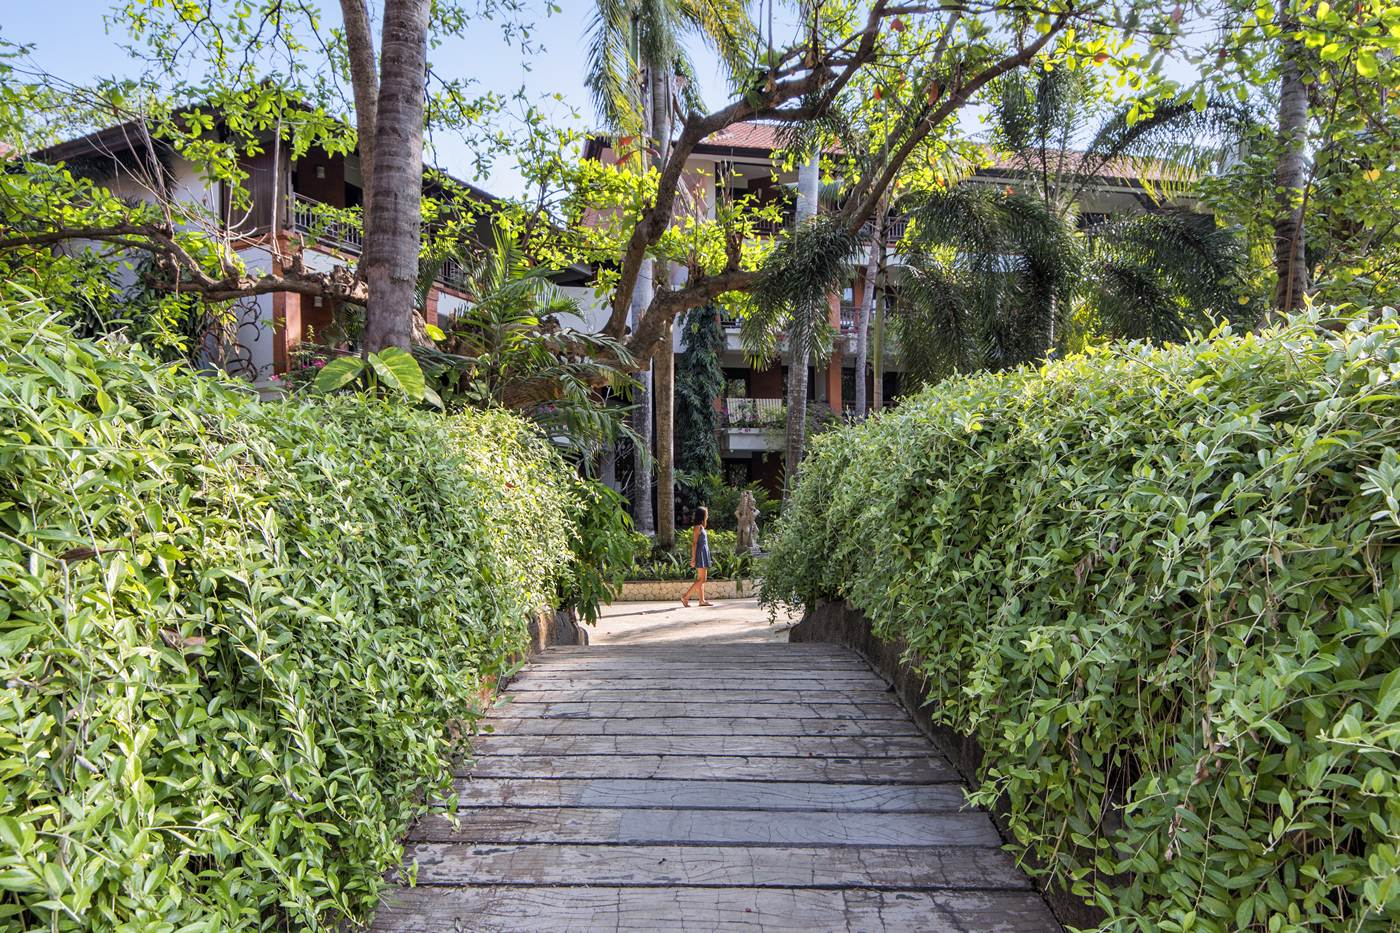 Photo Gallery - Bali Garden Beach Resort, a Hotel Accommodation in Kuta